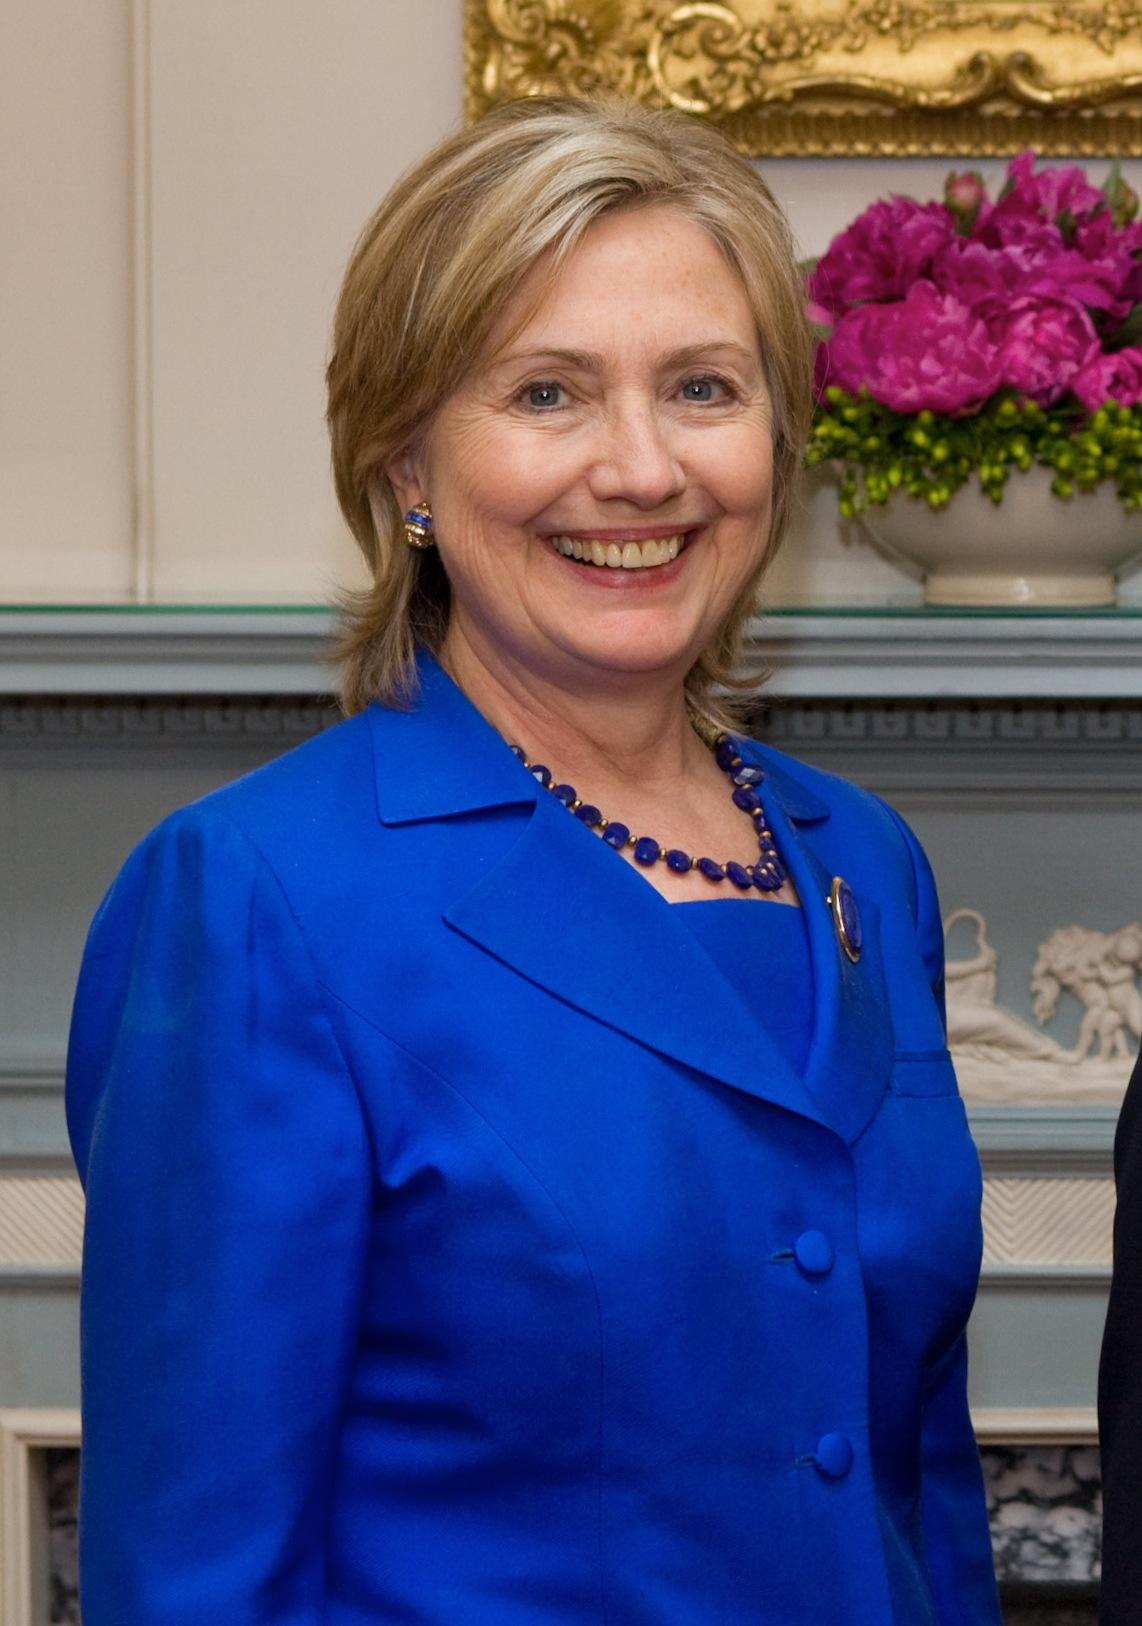 Democratic presidential candidate Hillary Clinton will speak at the Tinkham Veale University Center on August 27.